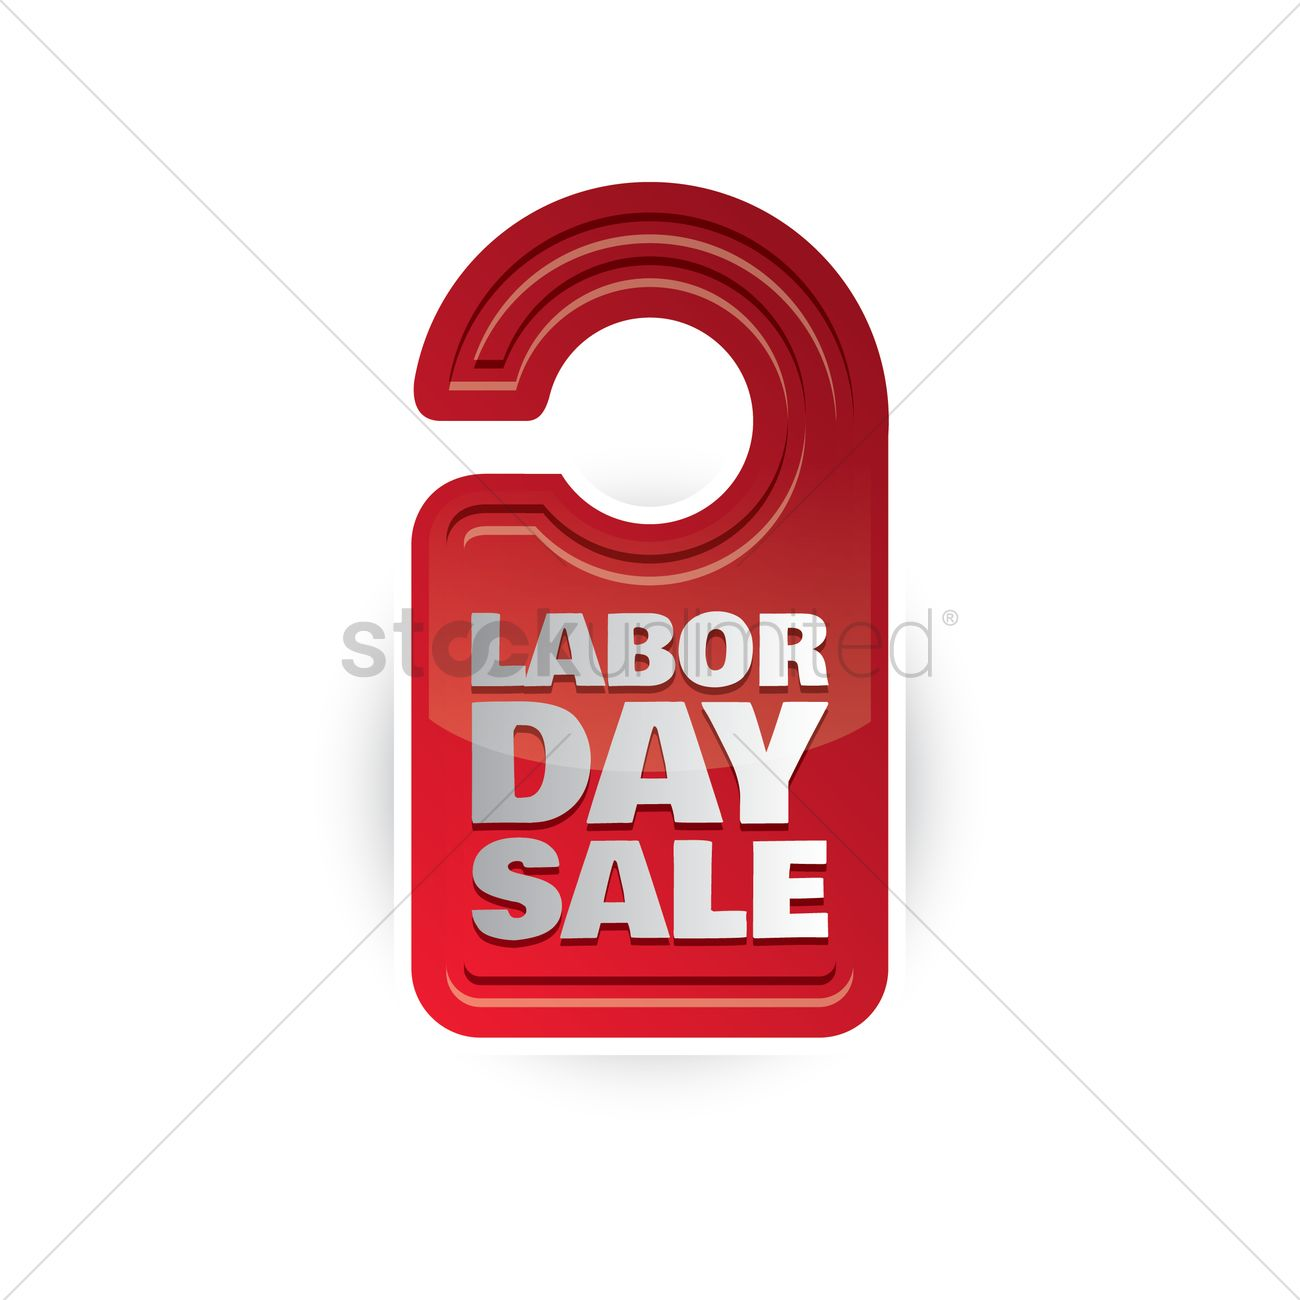 Labor Day Sale: Labor Day Sale Label Vector Image - 1536813